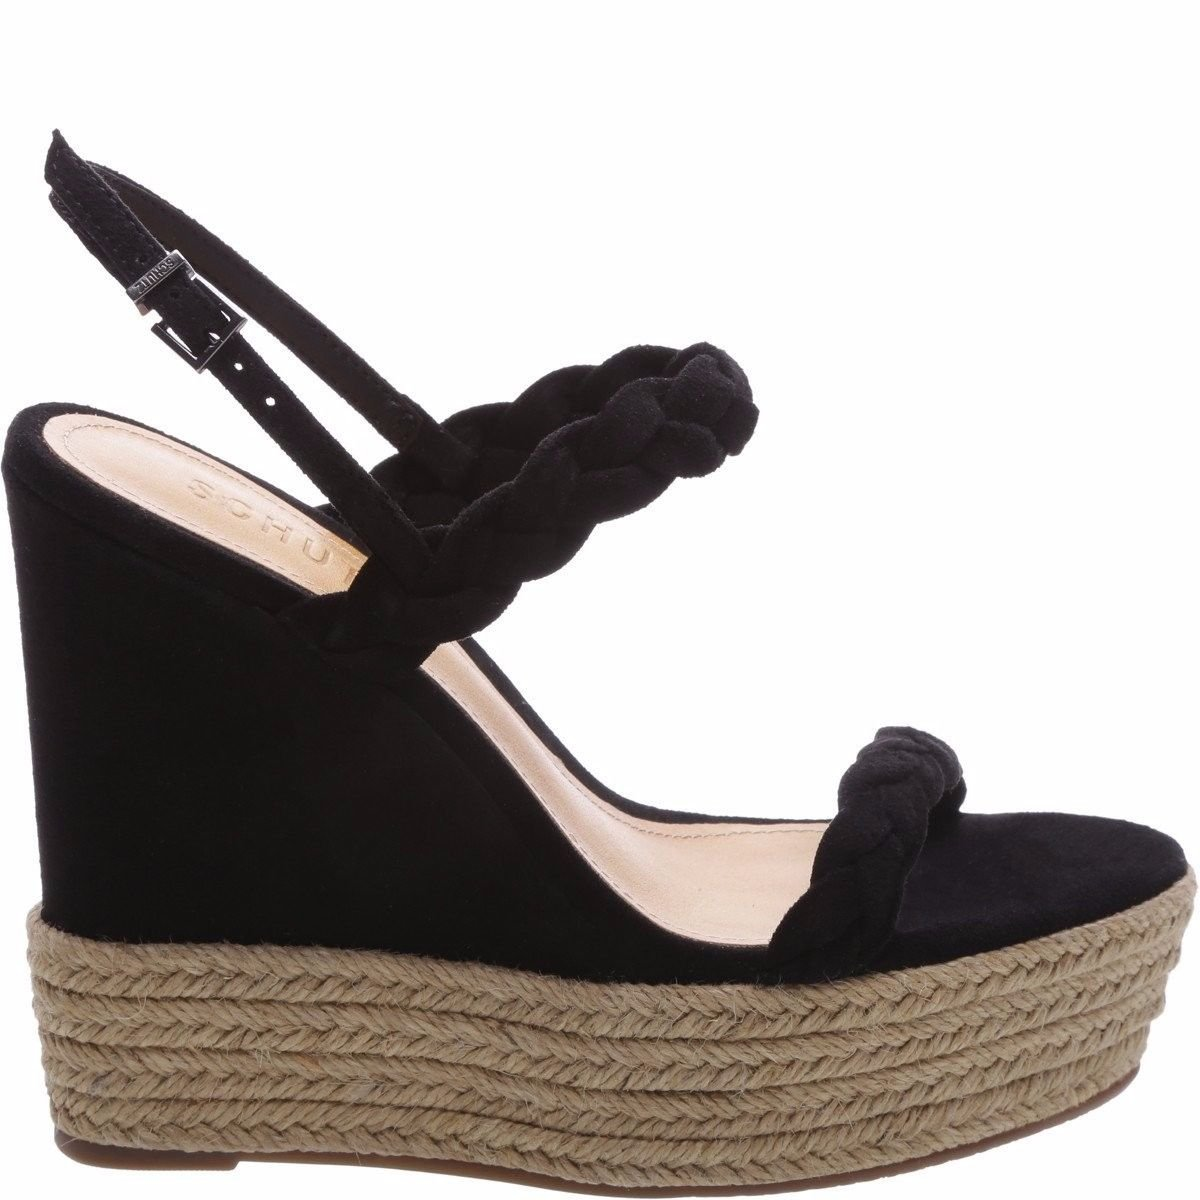 SCHUTZ Kamilly Black Suede Braided Strappy Espadrille Platform Wedge Sandals B07CJPJHF2 9 B(M) US